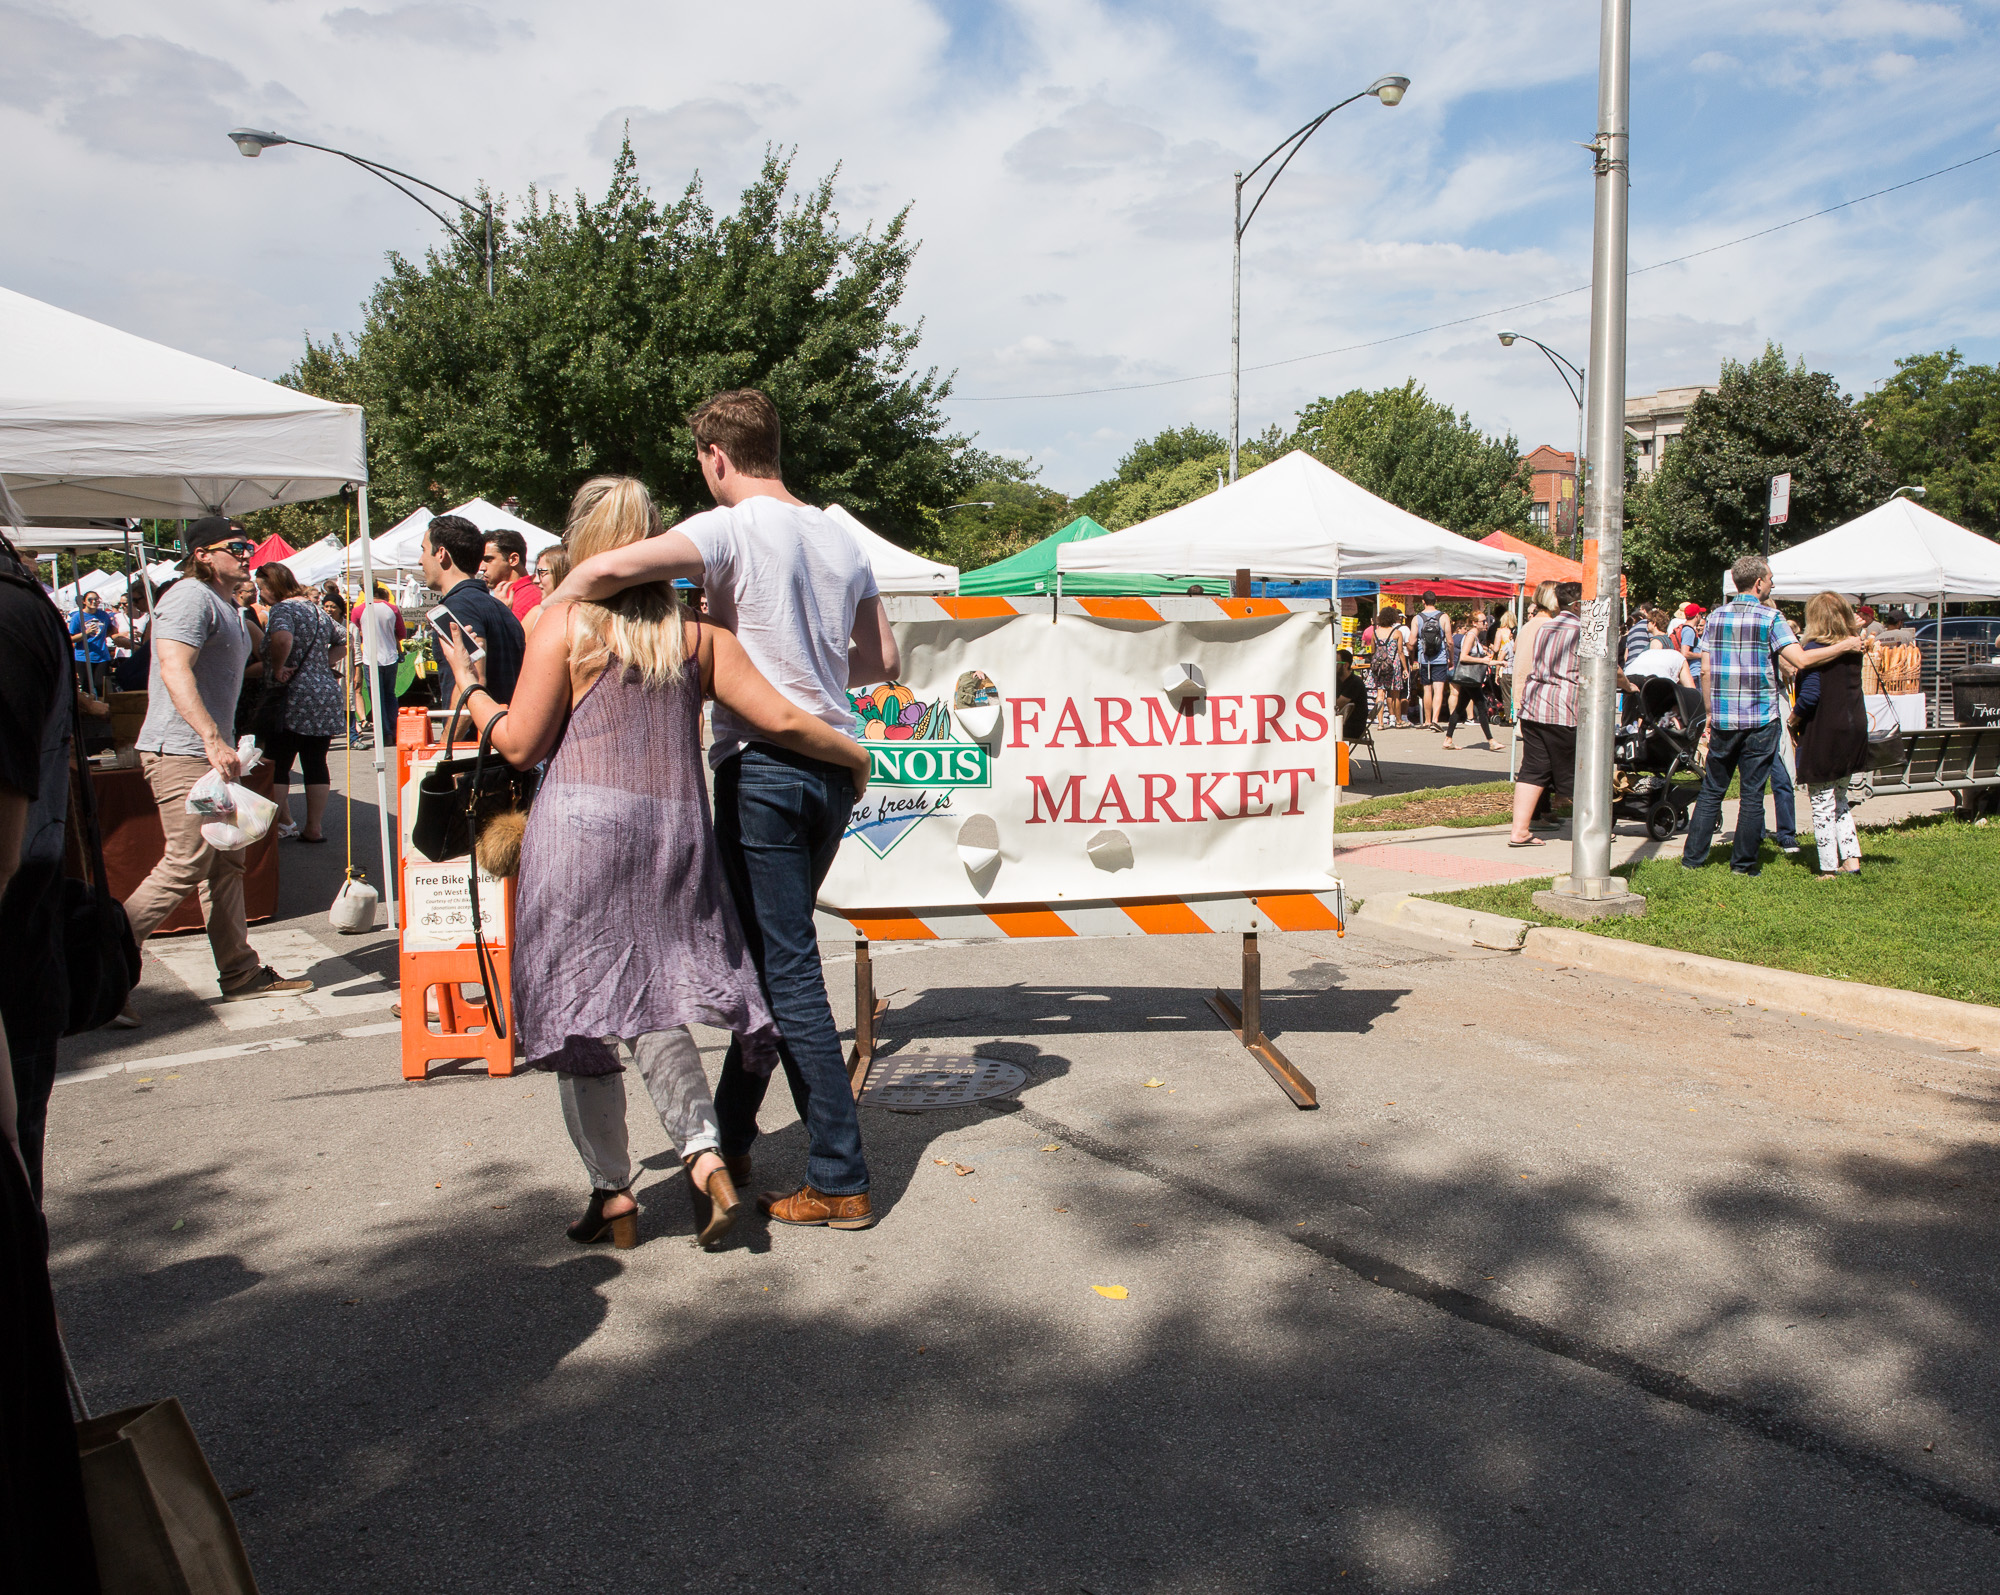 People travel all over to come to this farmers market in Illinois. There are some of the best local farmers from all over the city that make fresh grown produce + juice that is amazingggg! You can find out more at:  Logan Square Market